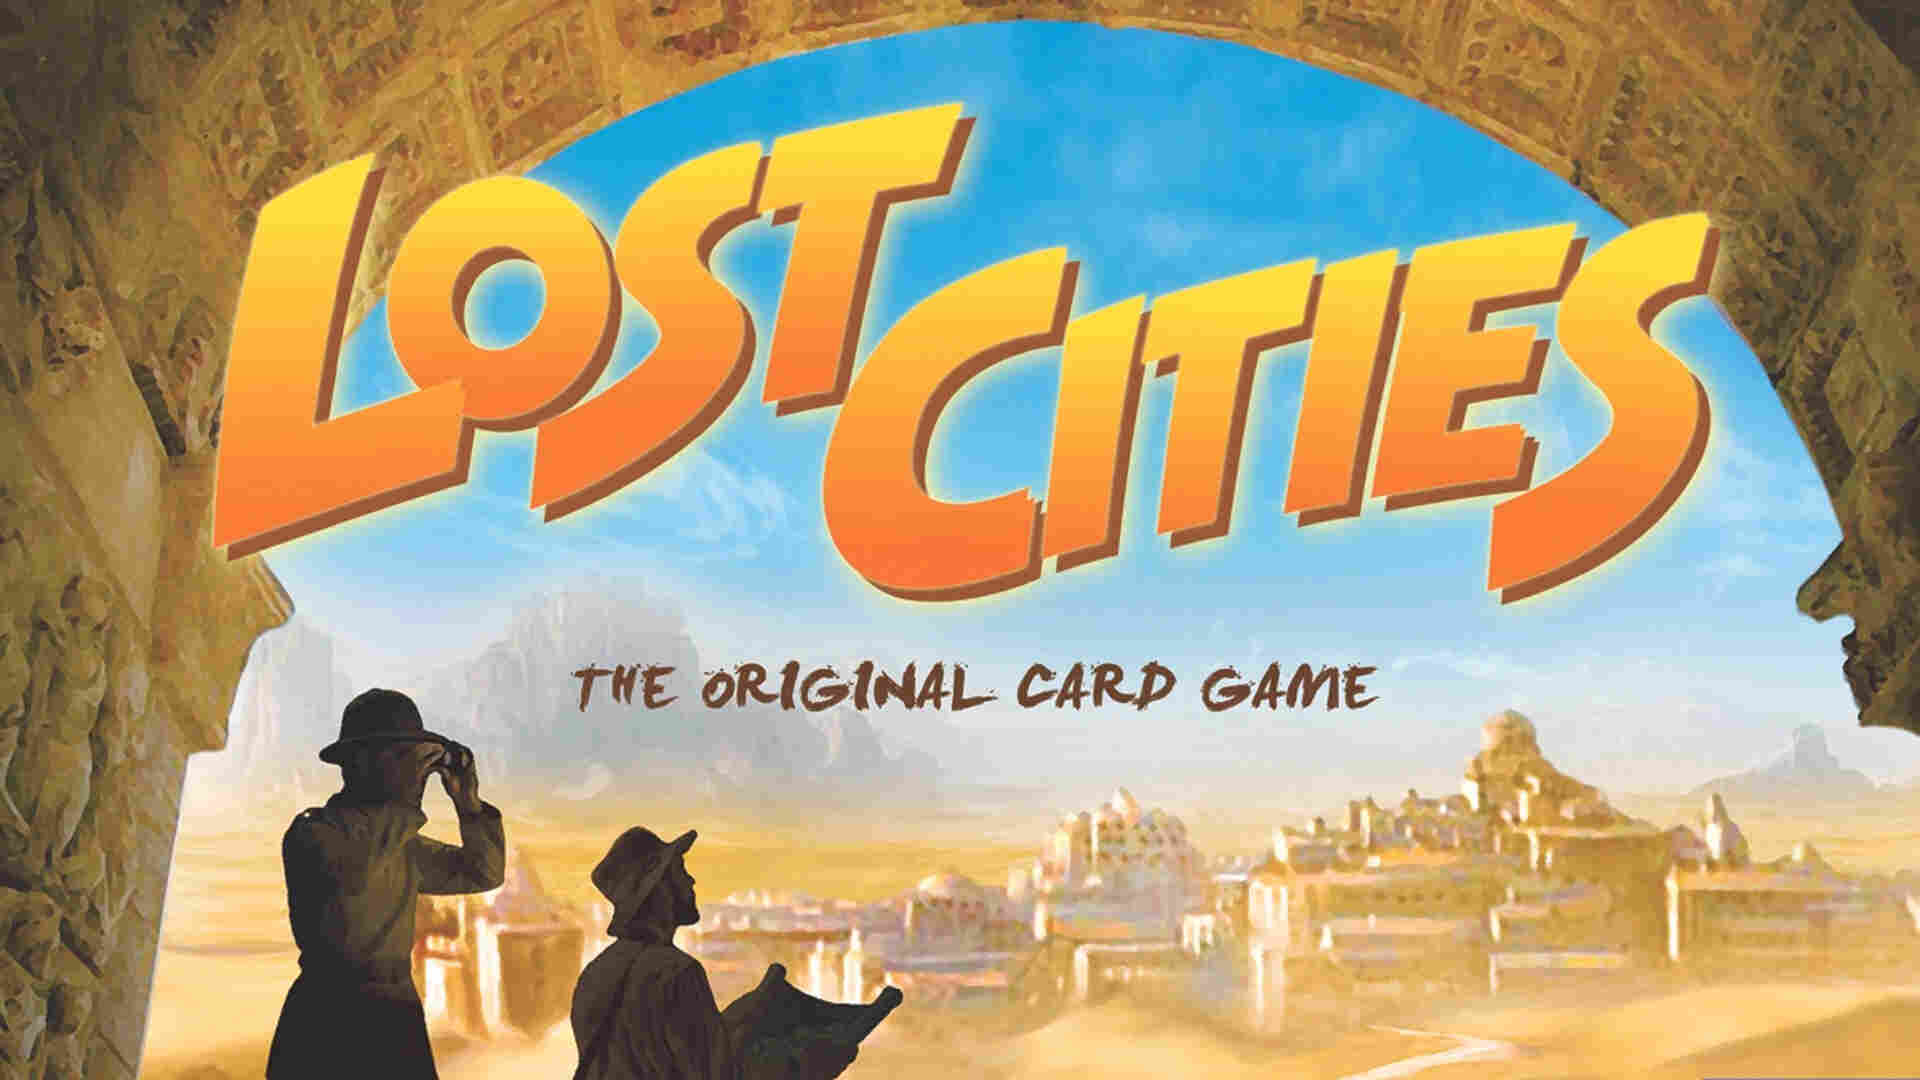 Lost Cities Game Rules and How to Play Guide